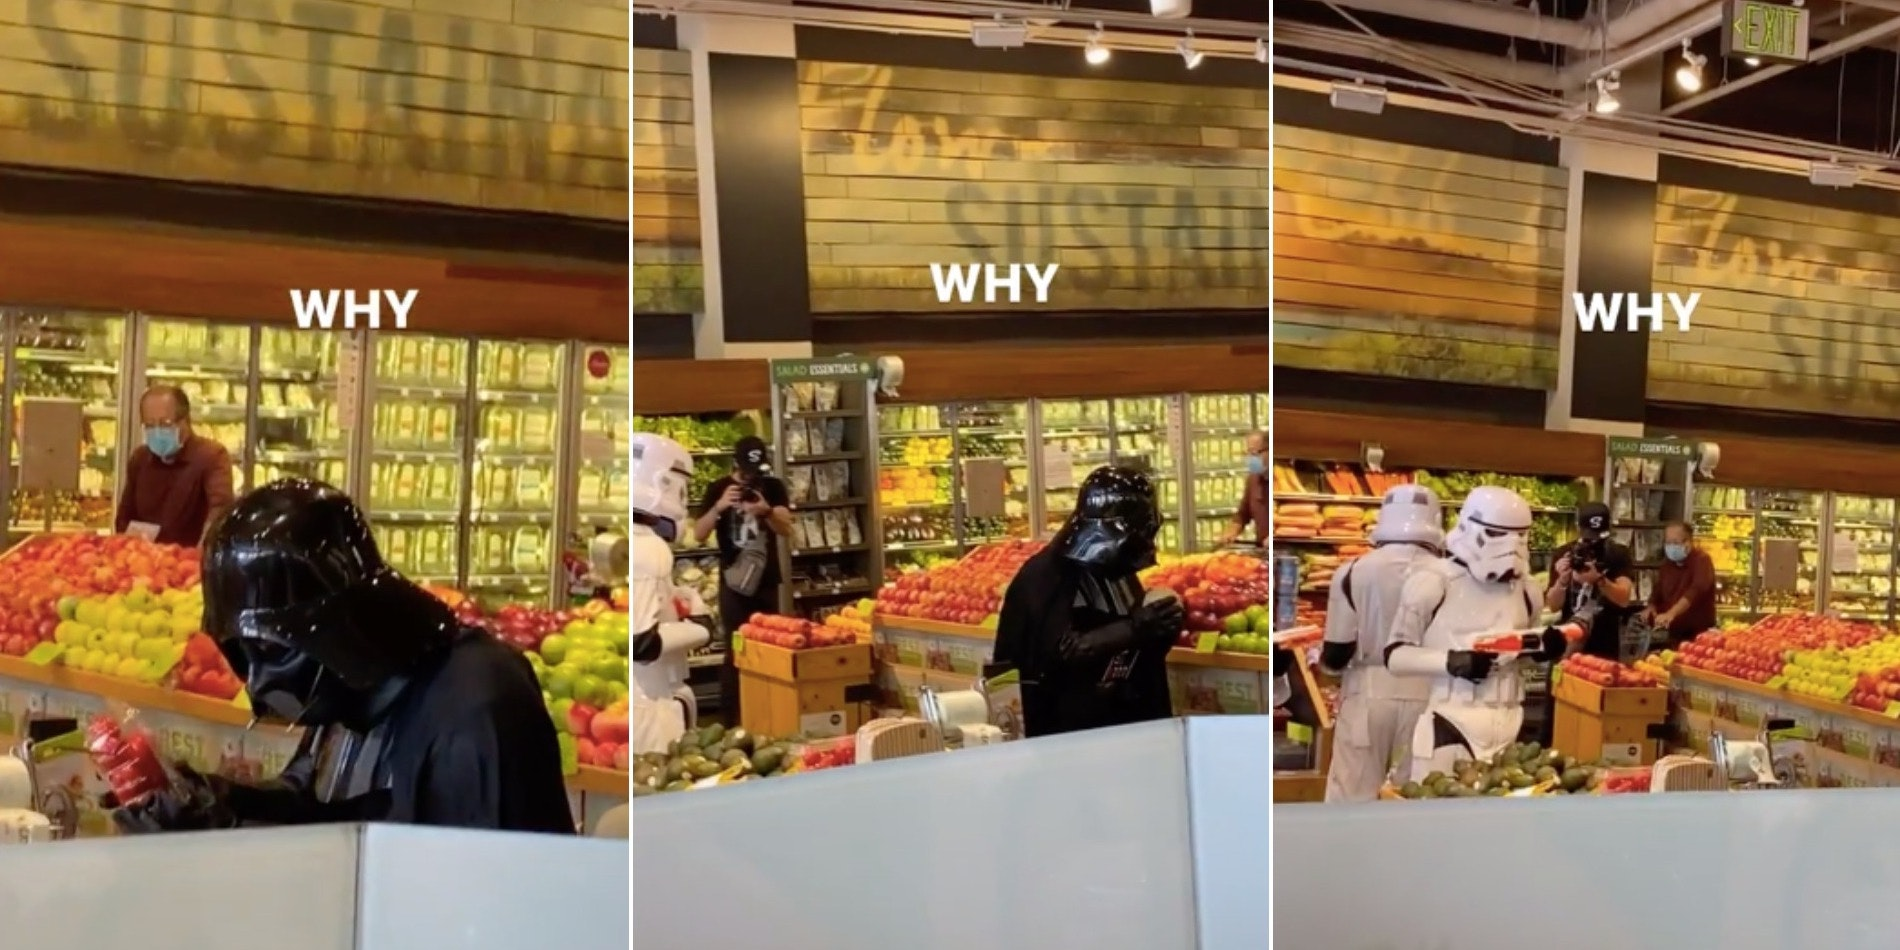 Viral TikTok shows Darth Vader and Stormtroopers scouring Whole Foods produce section